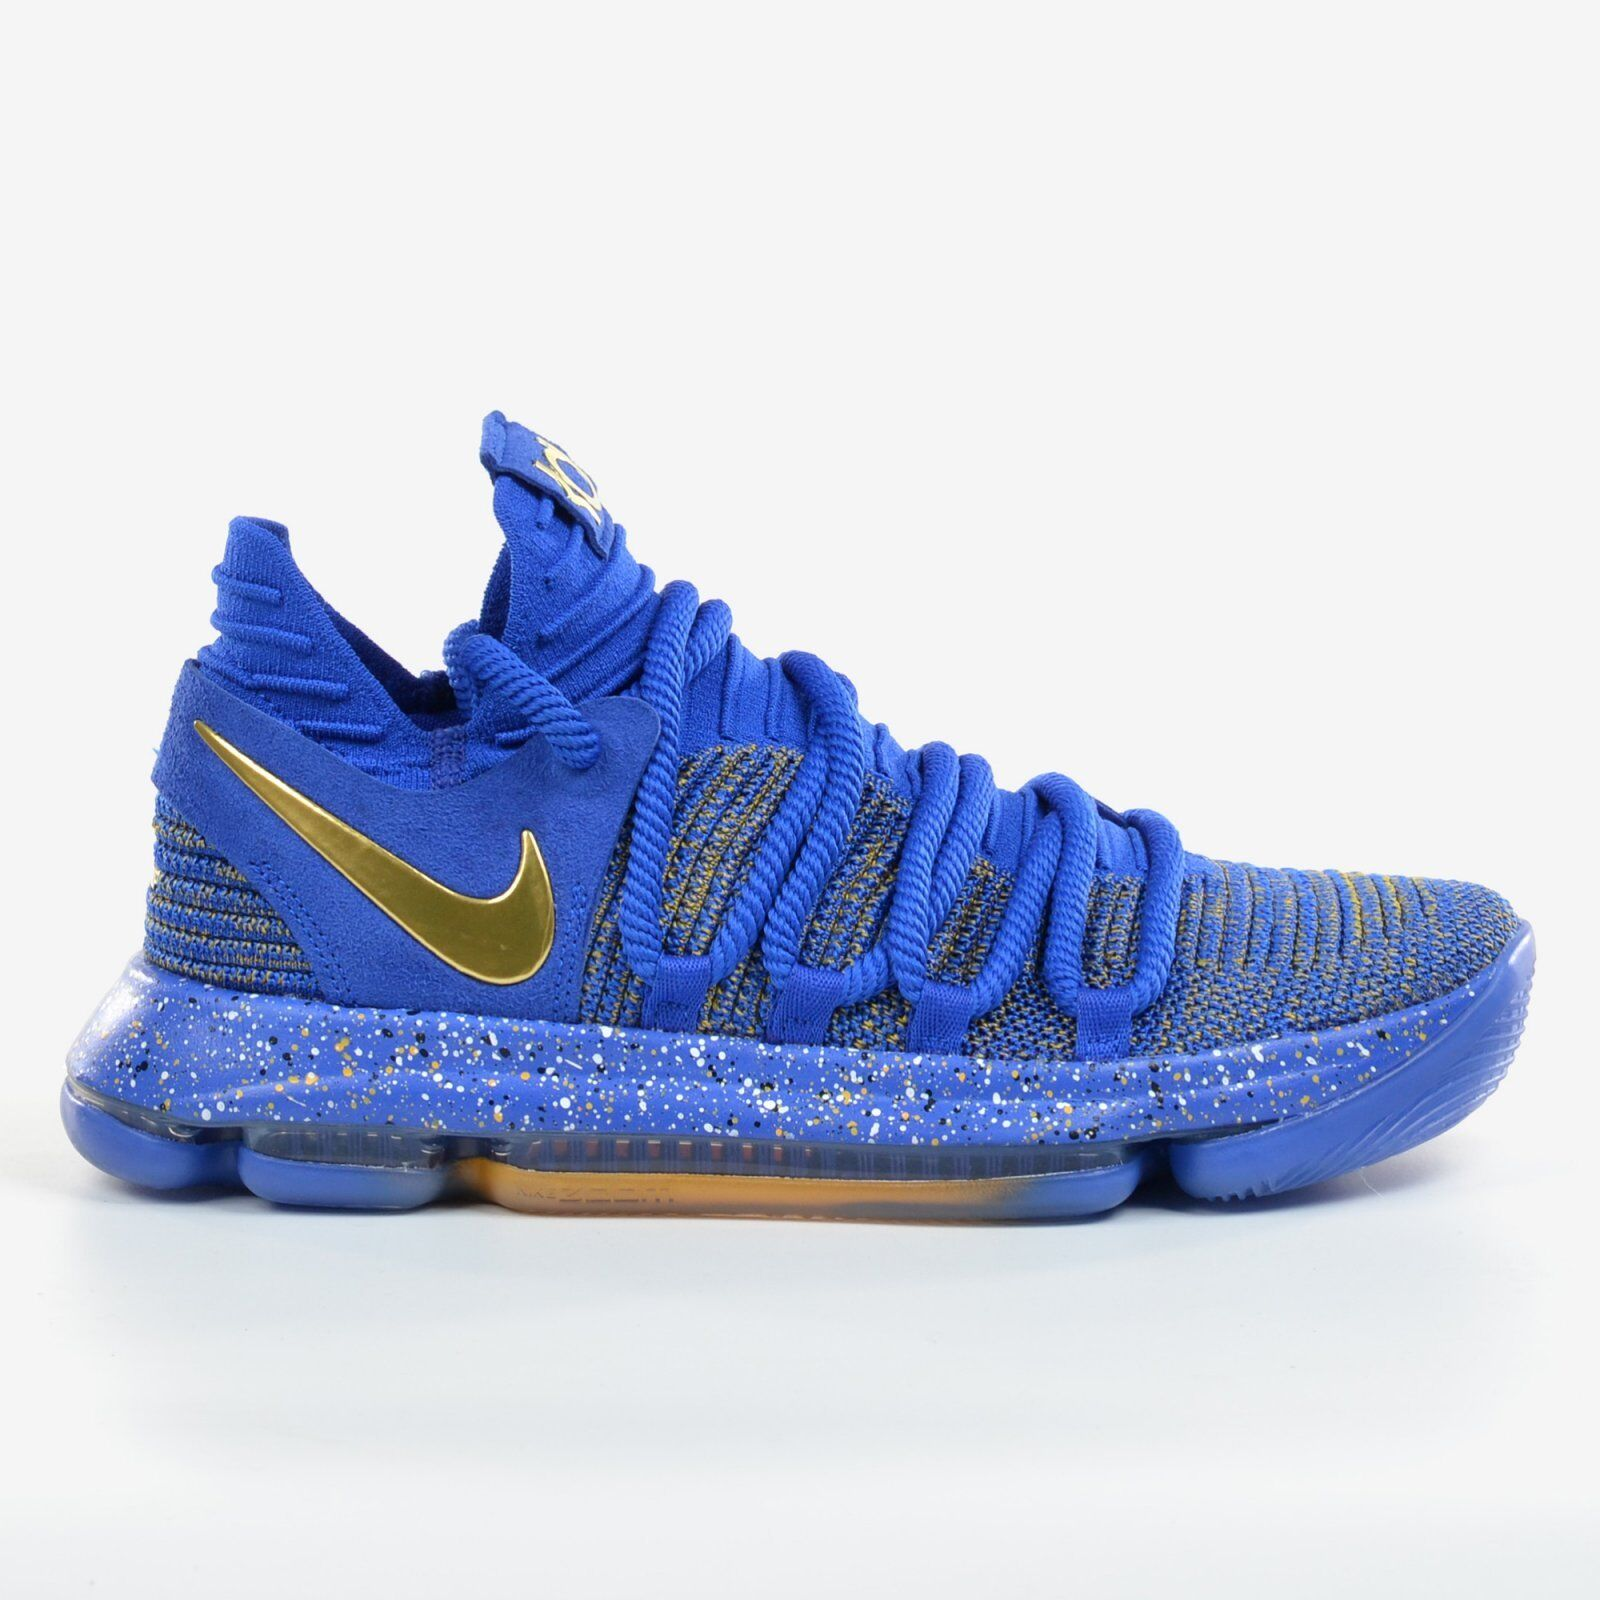 official photos 3a205 1bdce Nike Zoom KD 10 EP Racer Blue 2017 Finals MVP Metallic Gold FMVP X DS  897816-401